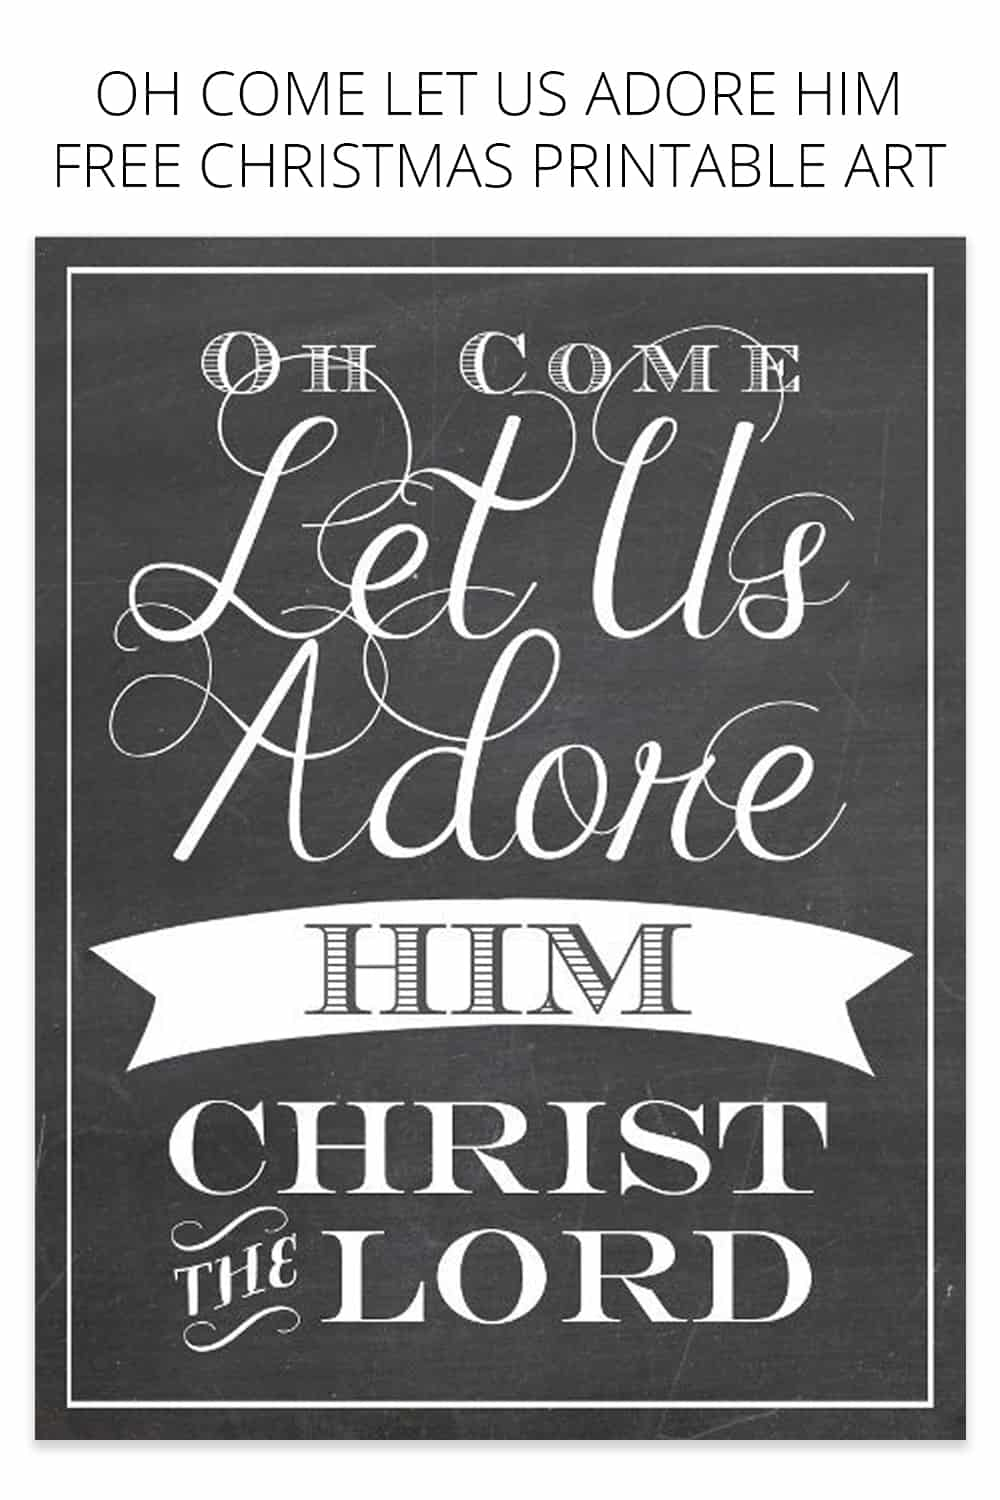 oh come let us adore him free christmas printable art